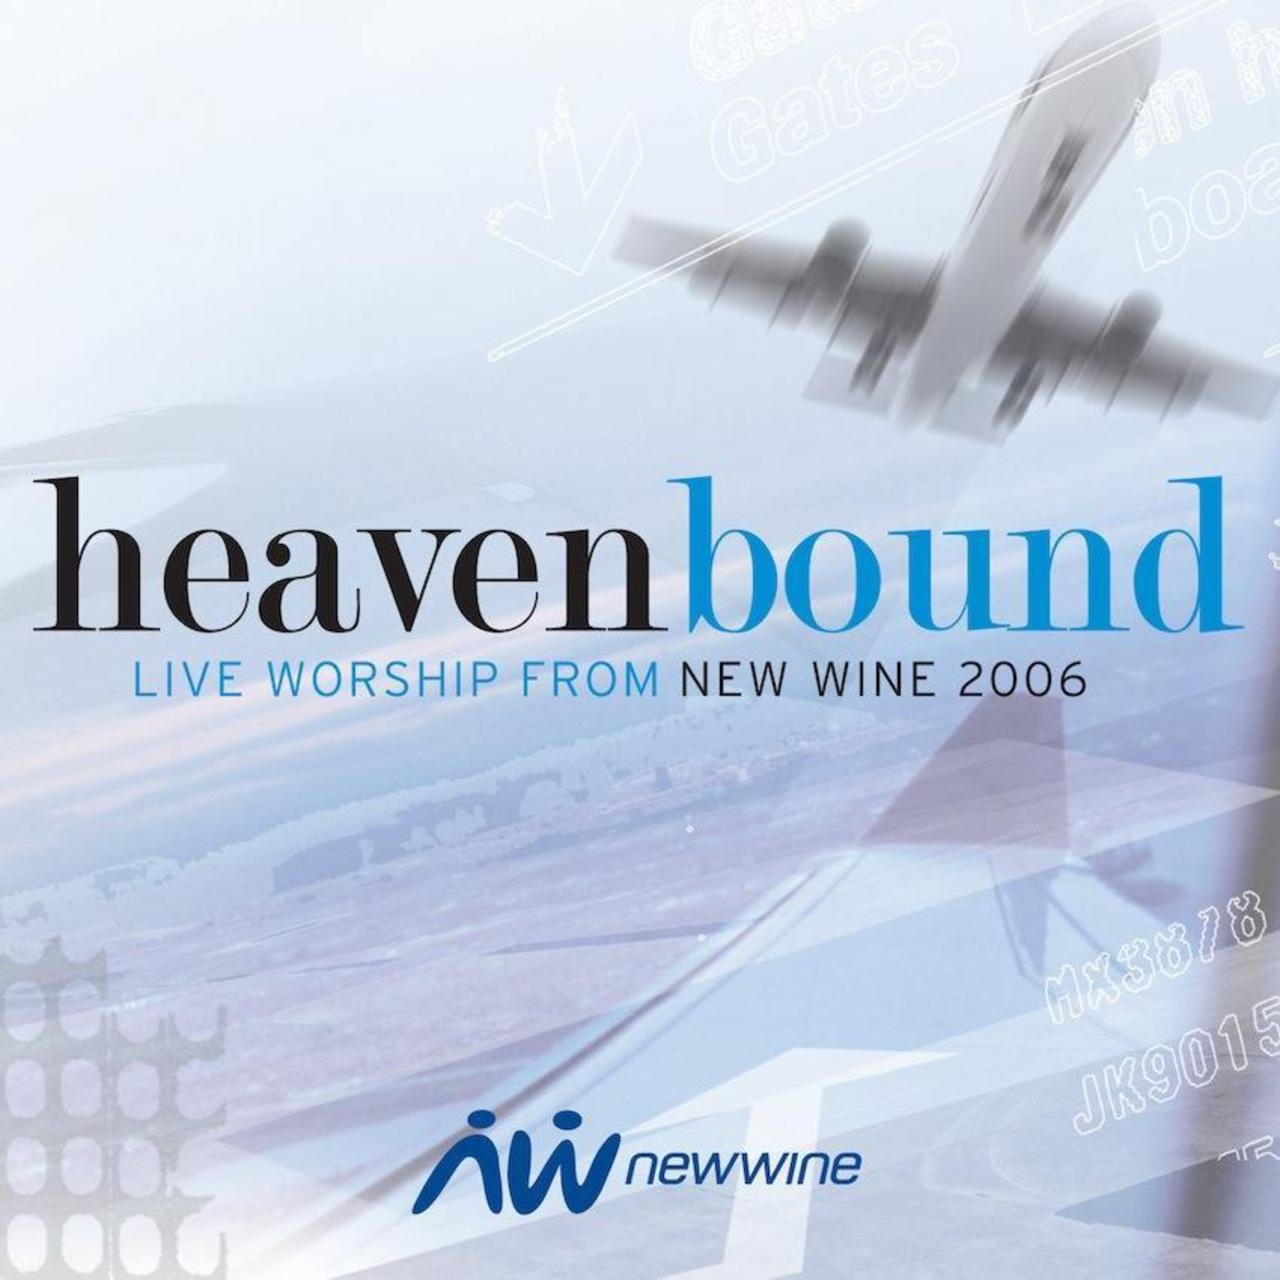 Heavenbound: Live Worship from New Wine